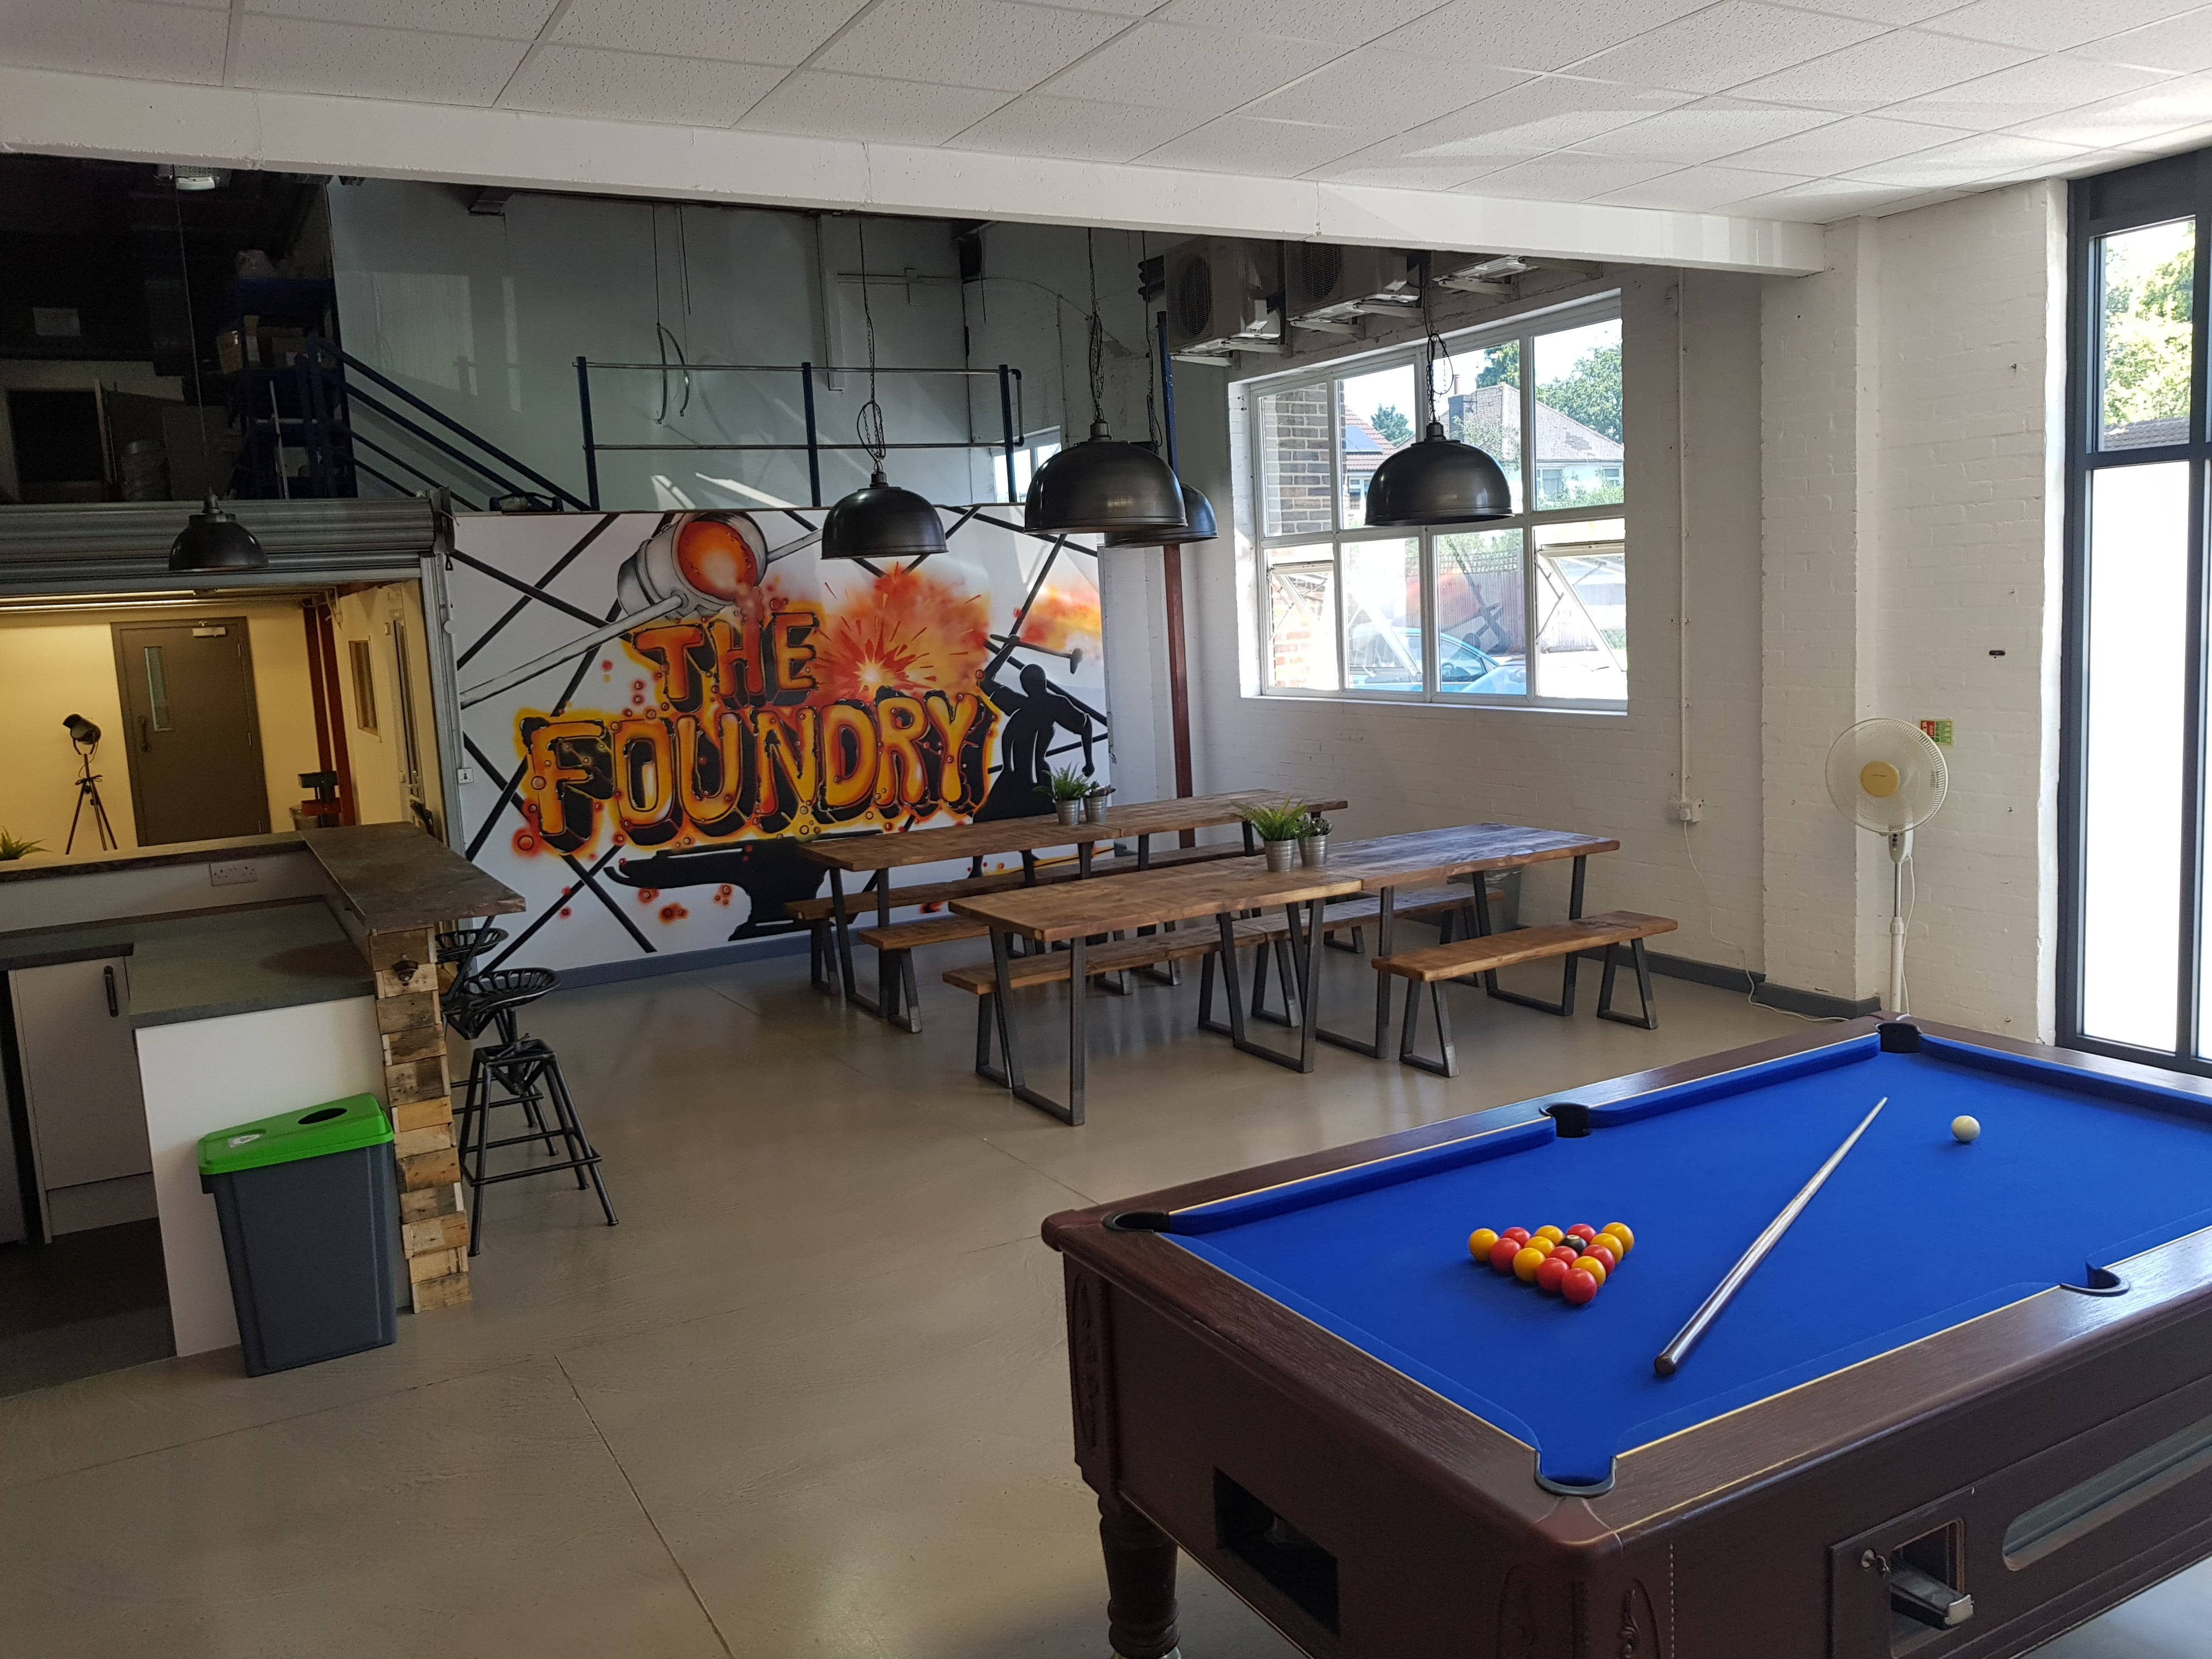 Pool table in the foundry